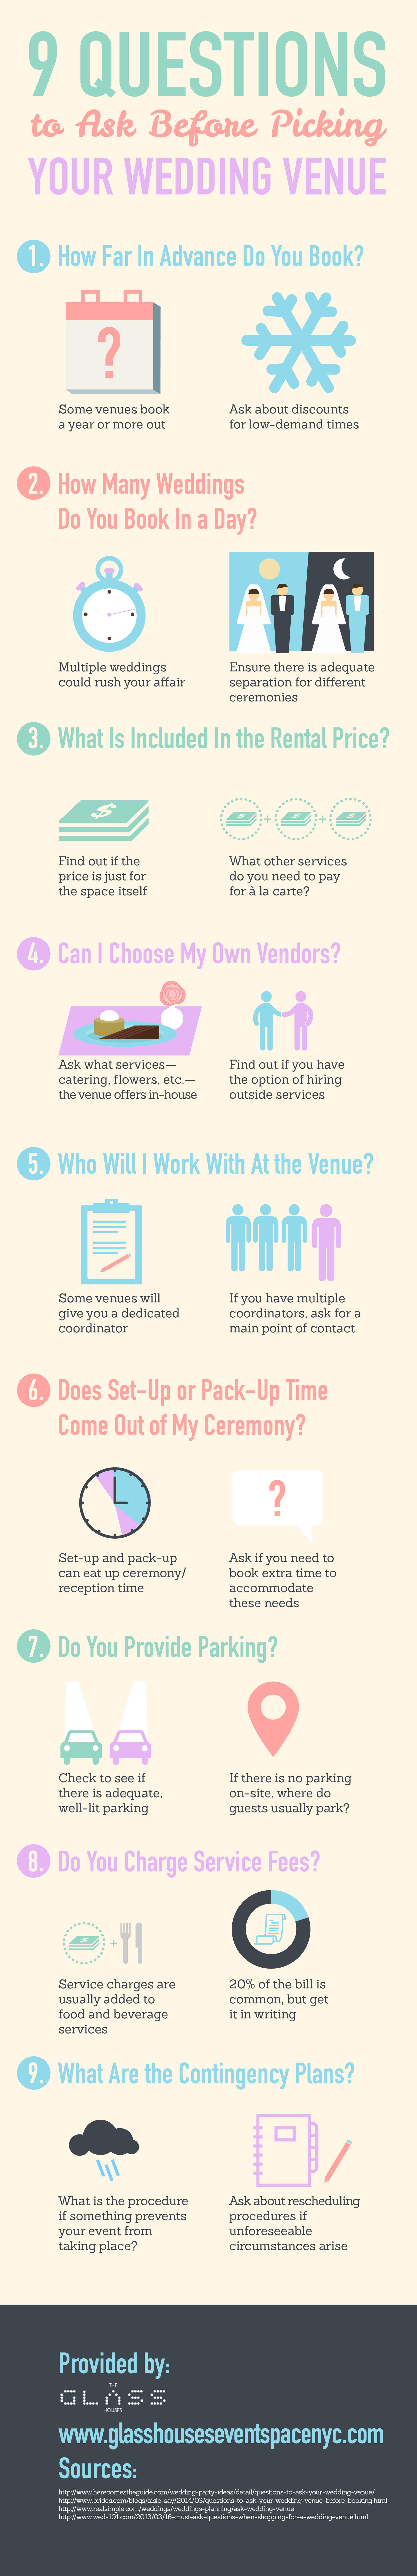 9-questions-to-ask-before-picking-your-wedding-venue-infographic-01